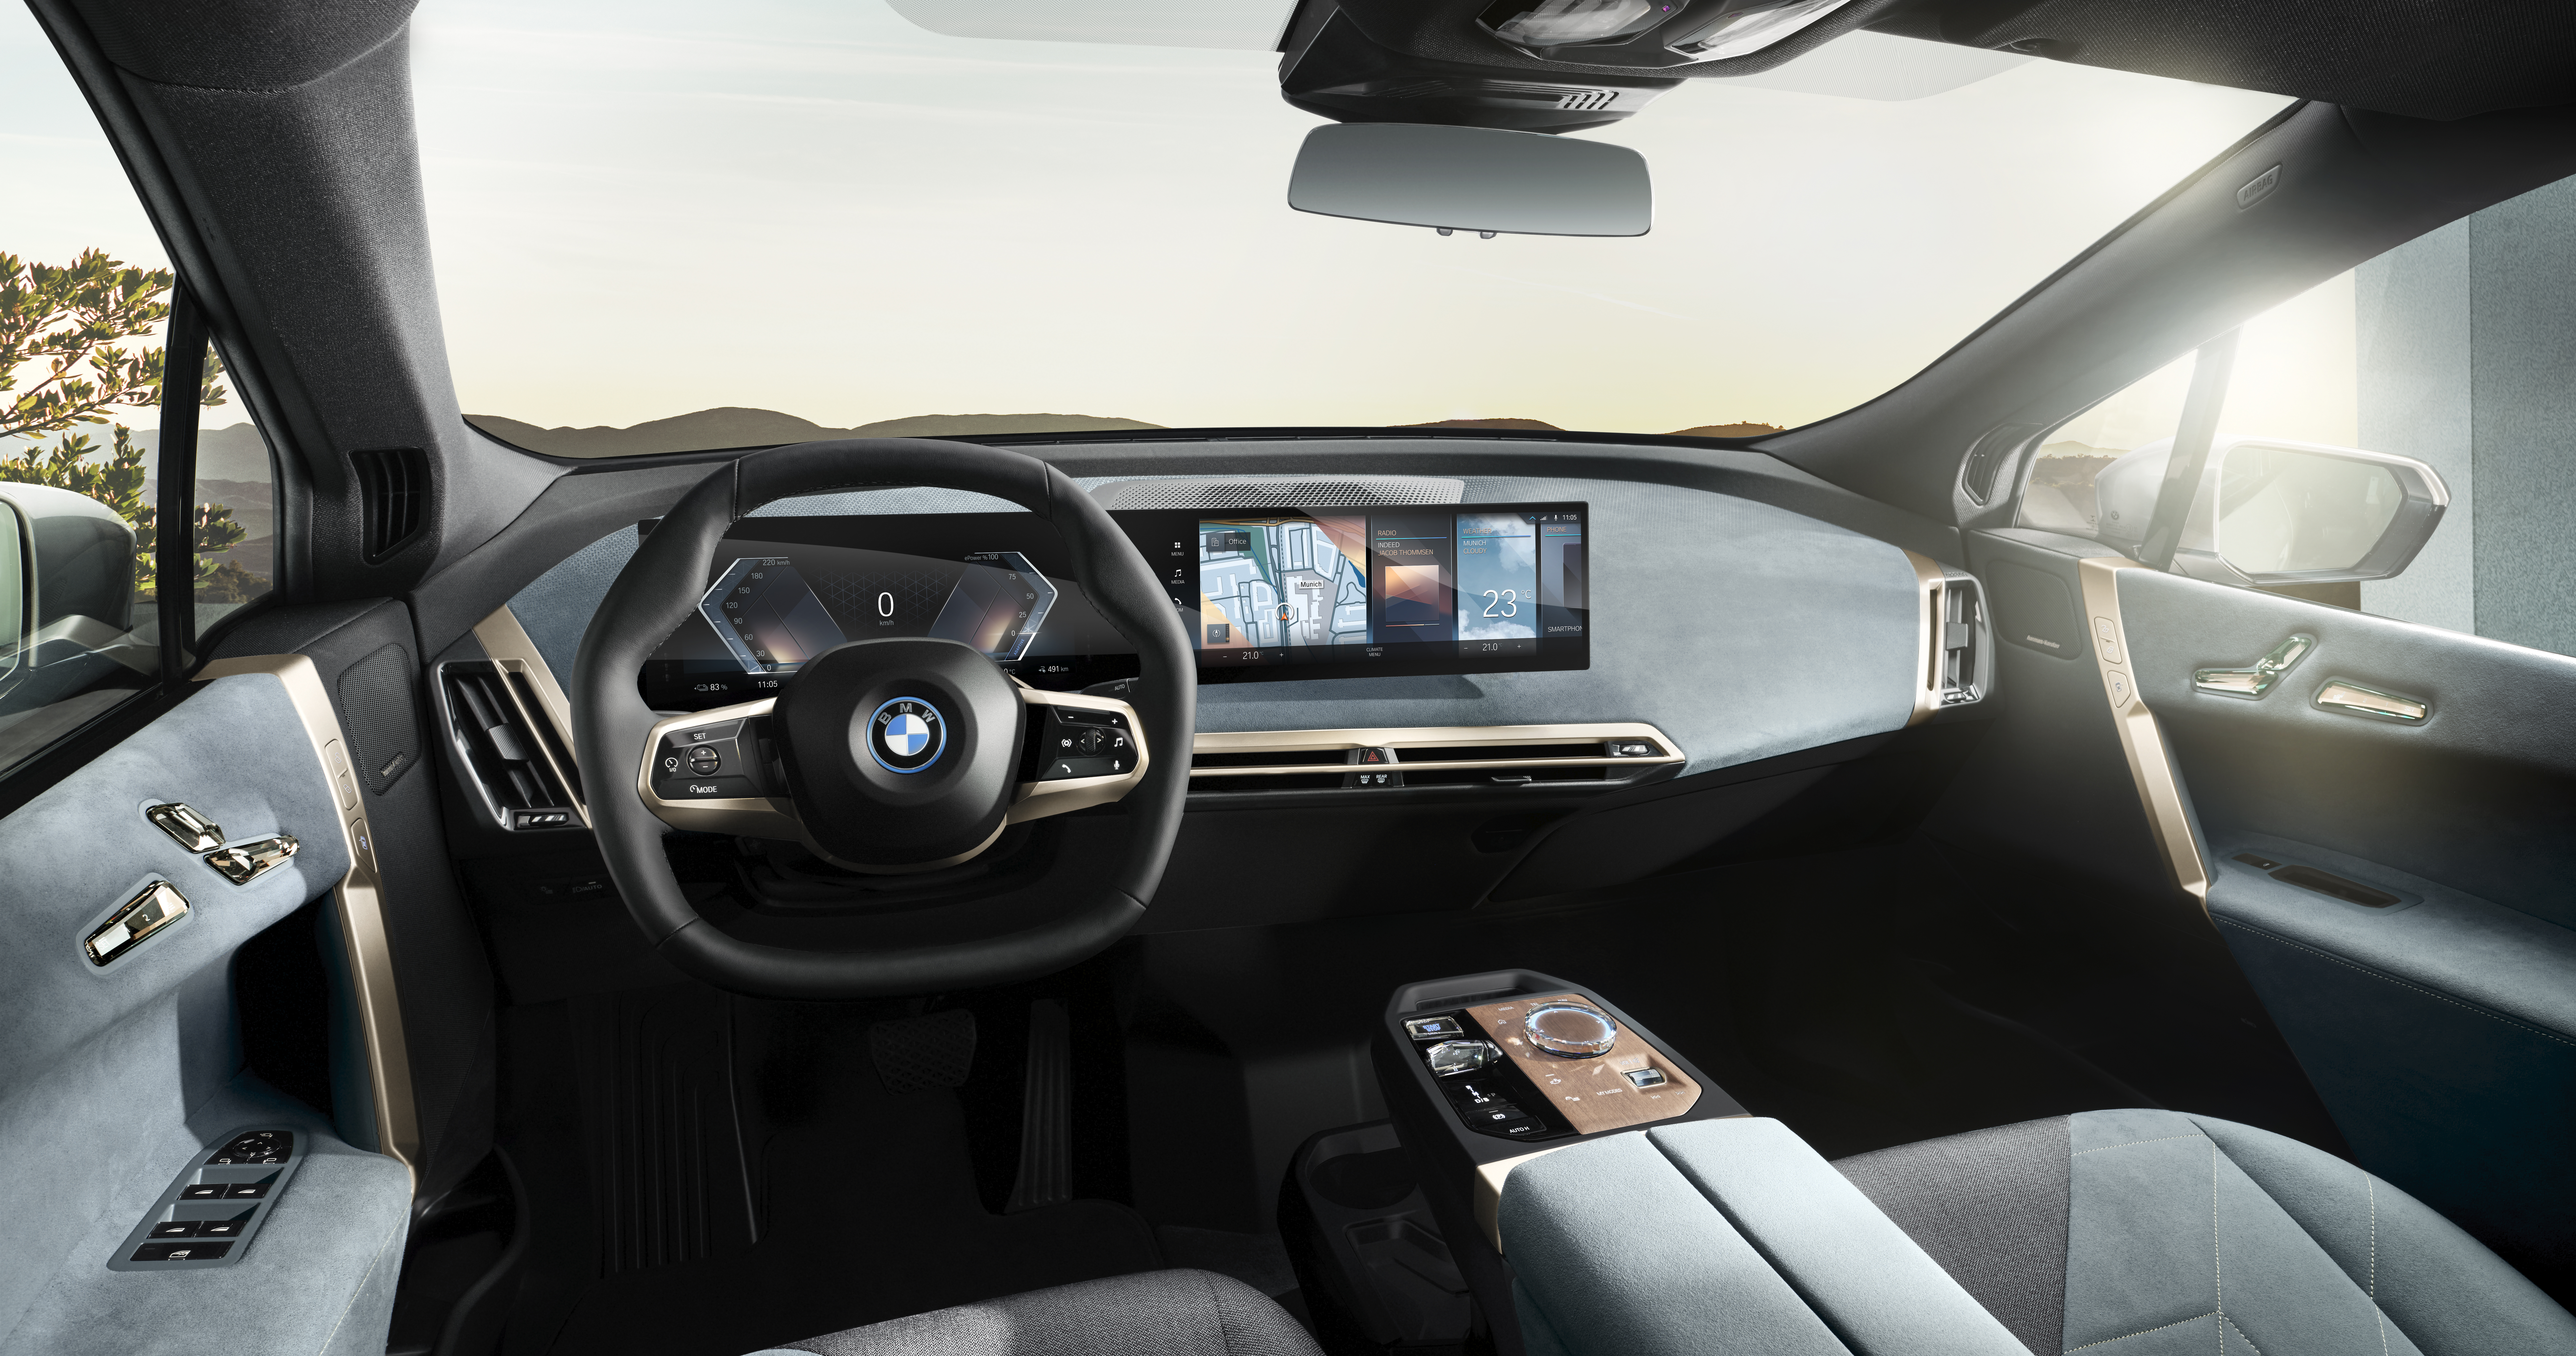 BMW iX revealed – iNEXT electric SUV gets a name and more than 500 PS, 600 km range; coming late-2021 Image #1208204